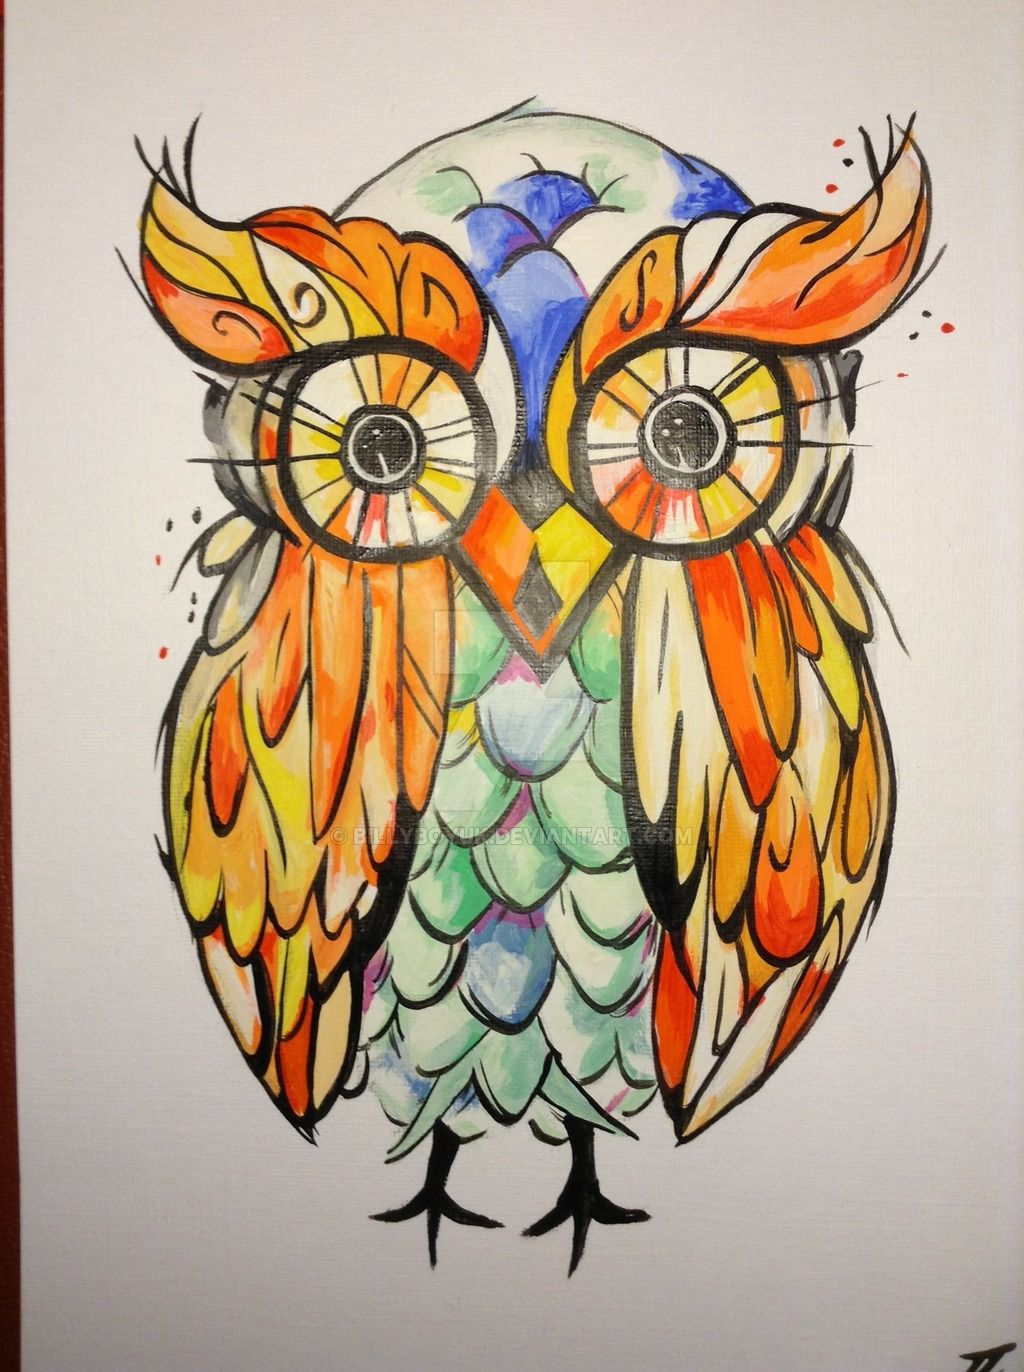 Acrylic Owl Painting Tattoo Style Art By Billyboyuk On Deviantart